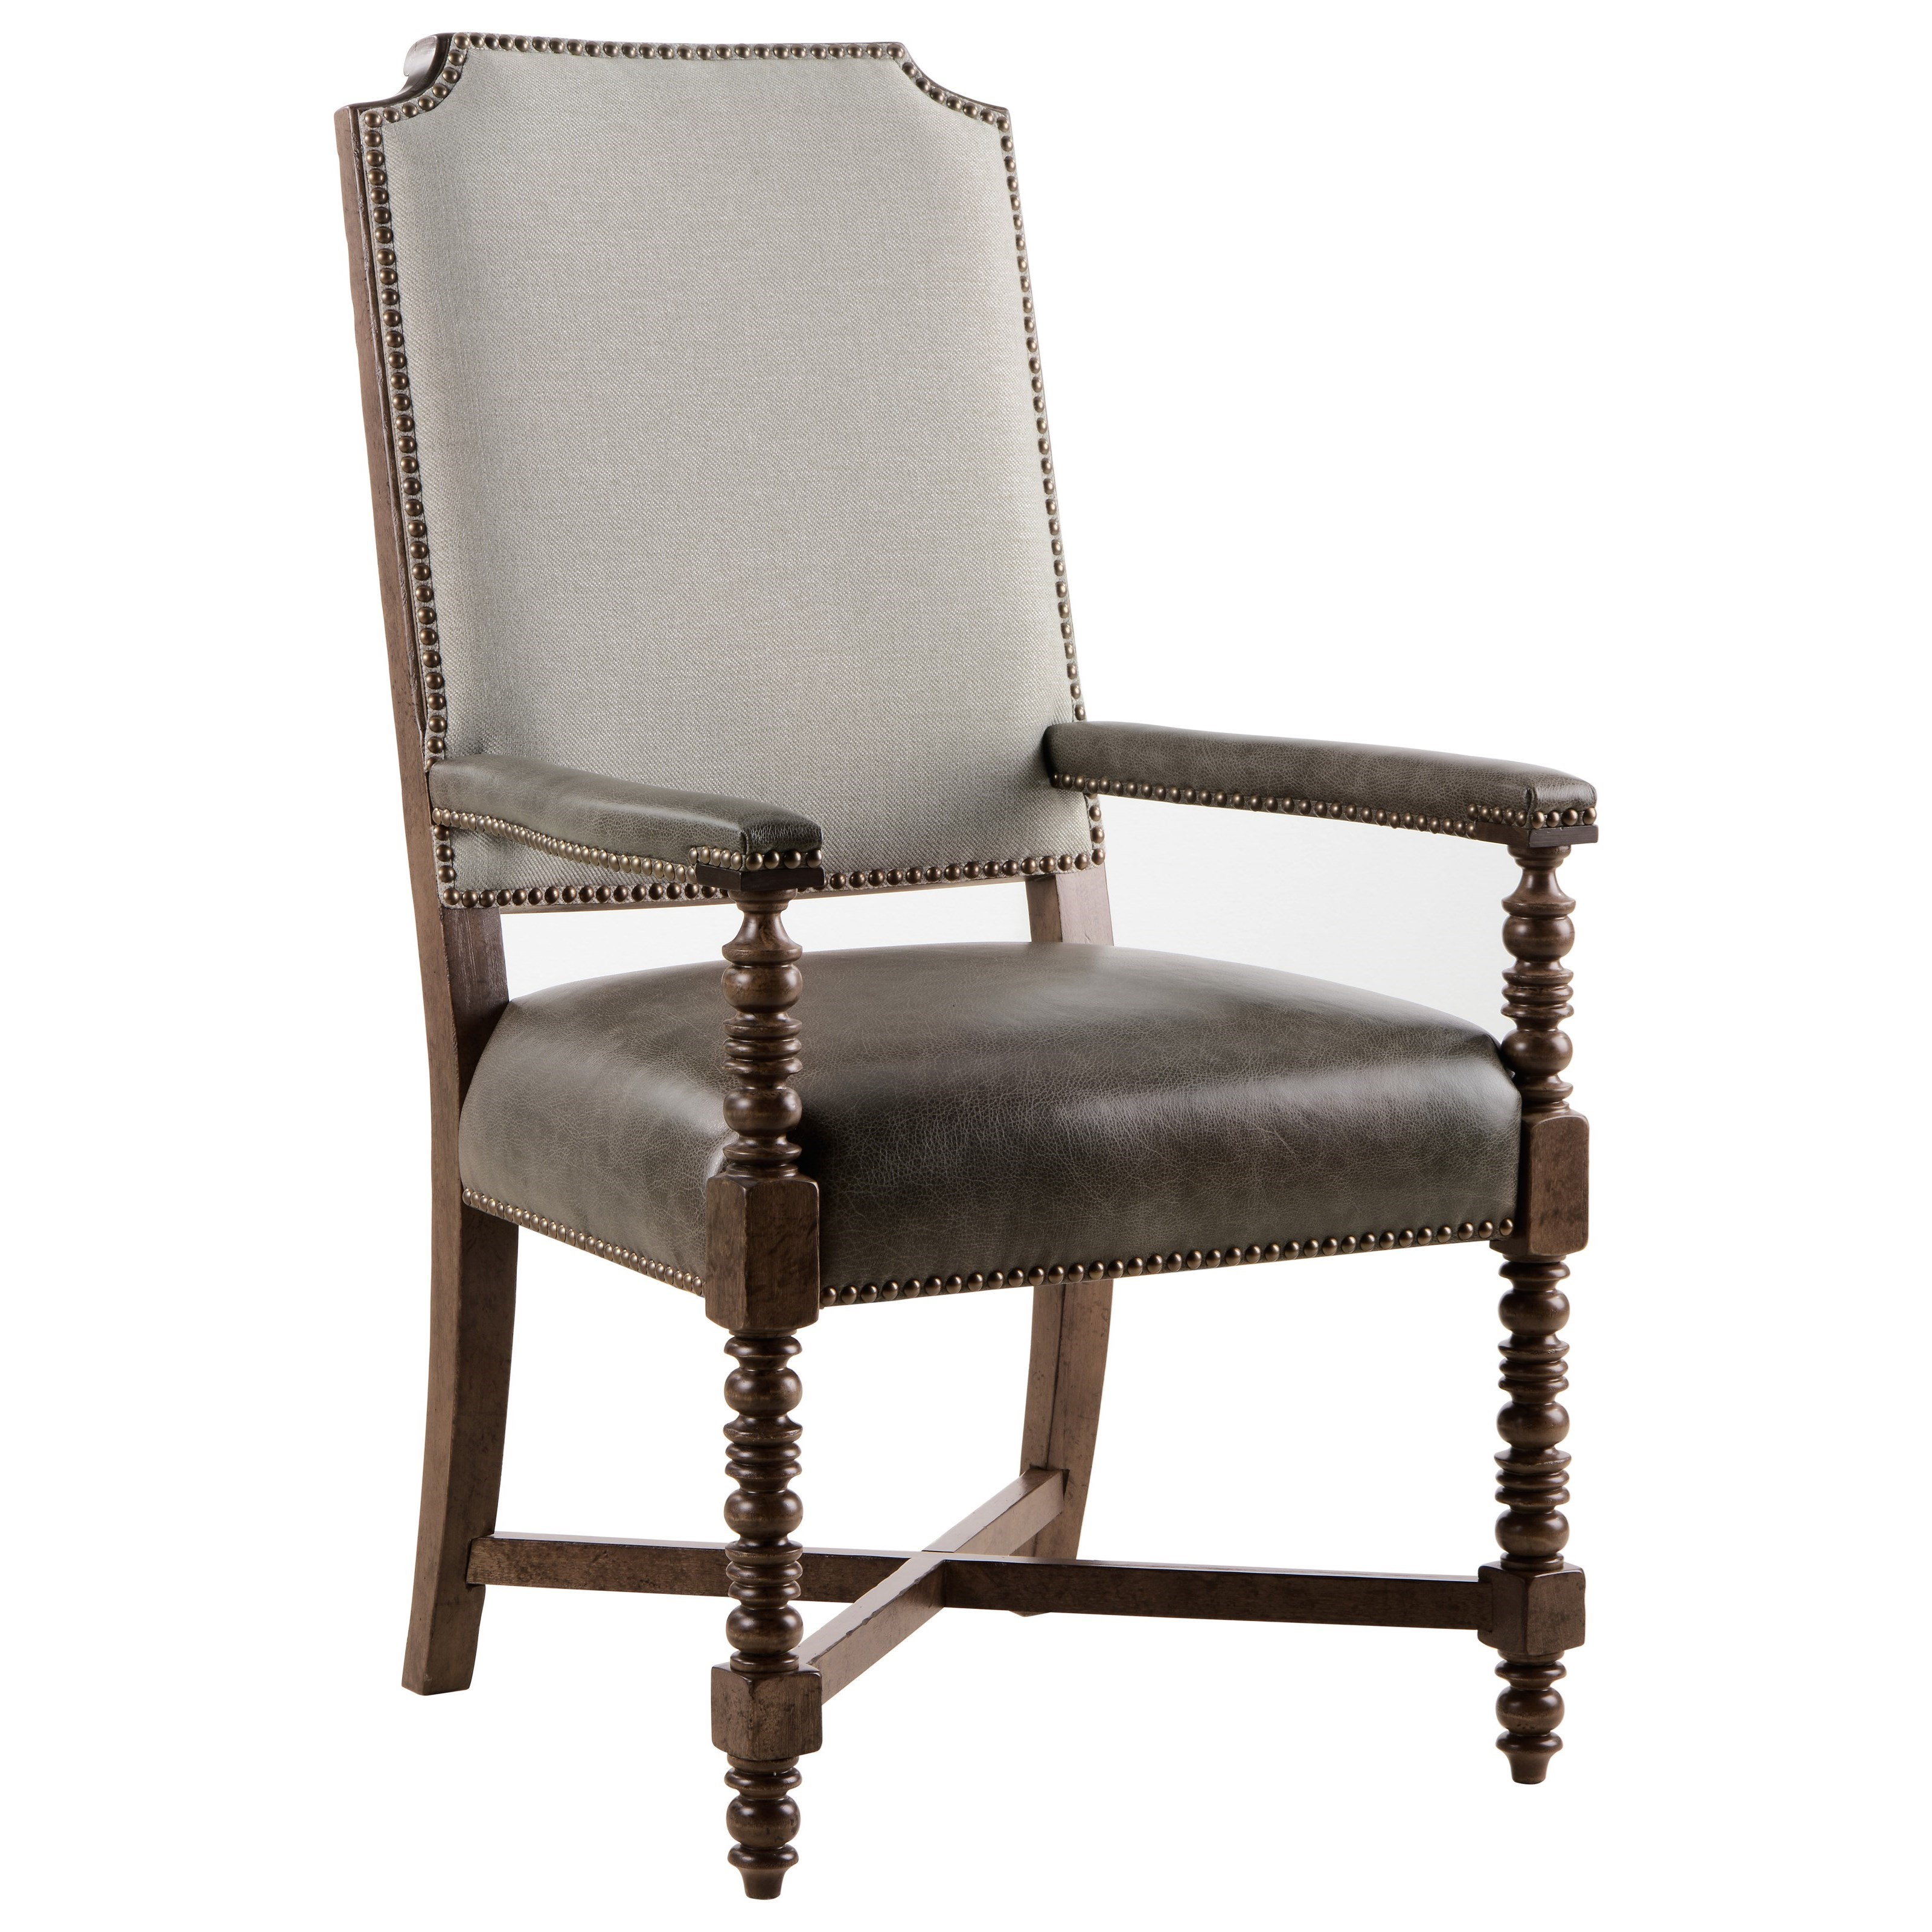 American Chapter Distiller's Upholstered Back Arm Chair by A.R.T. Furniture Inc at Home Collections Furniture